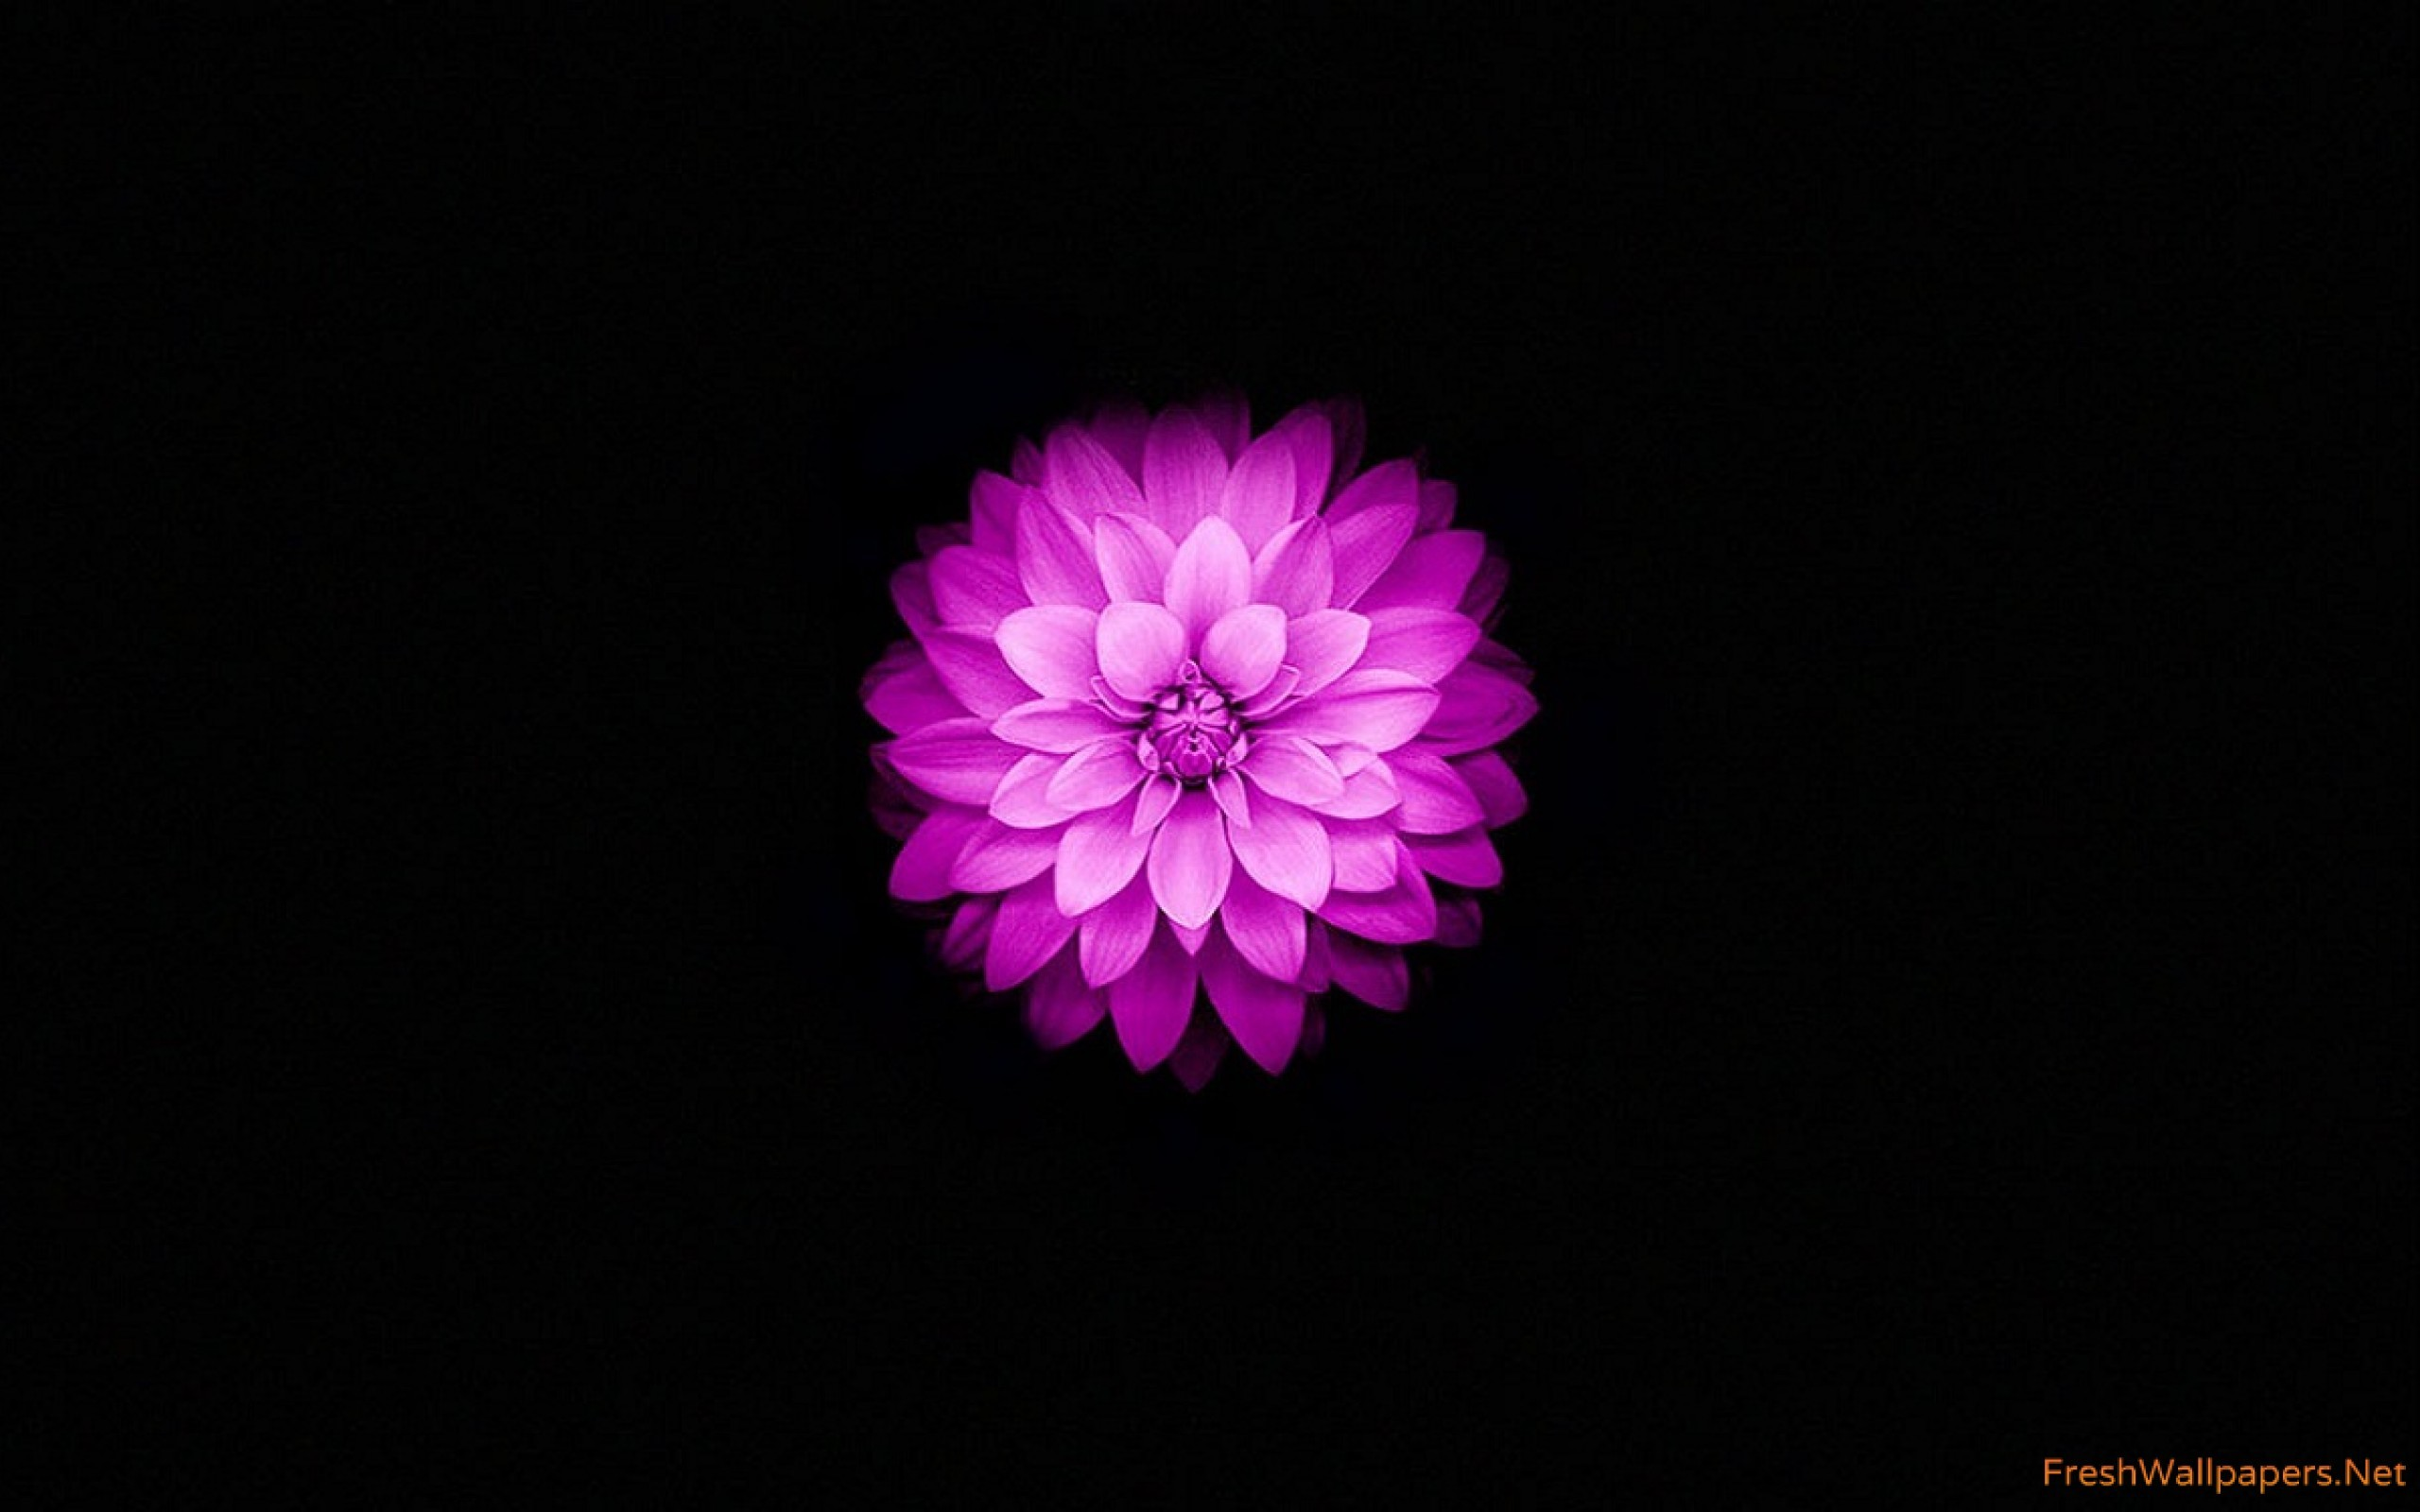 2560x1600 Apple iPhone 6 and iPhone 6s Wallpaper with Purple Lotus Flower wallpaper